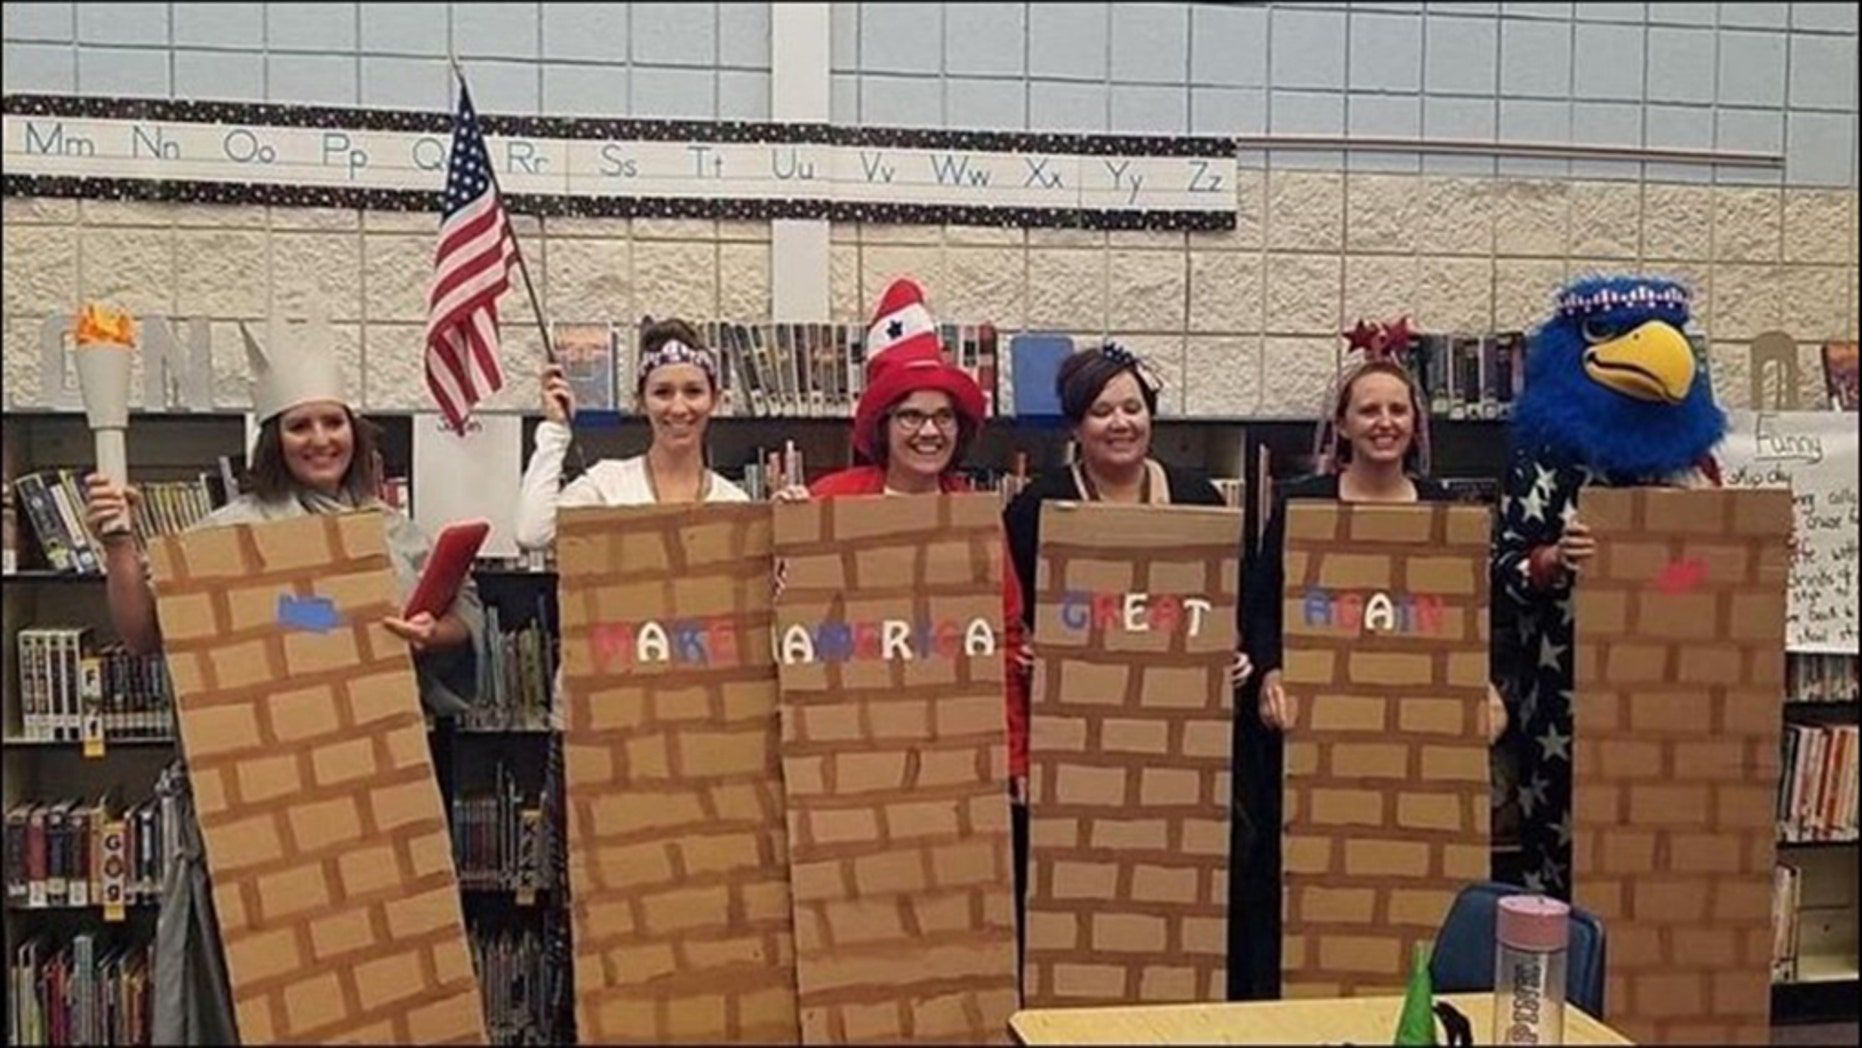 District offers apology after teachers dress up as Trump border wall